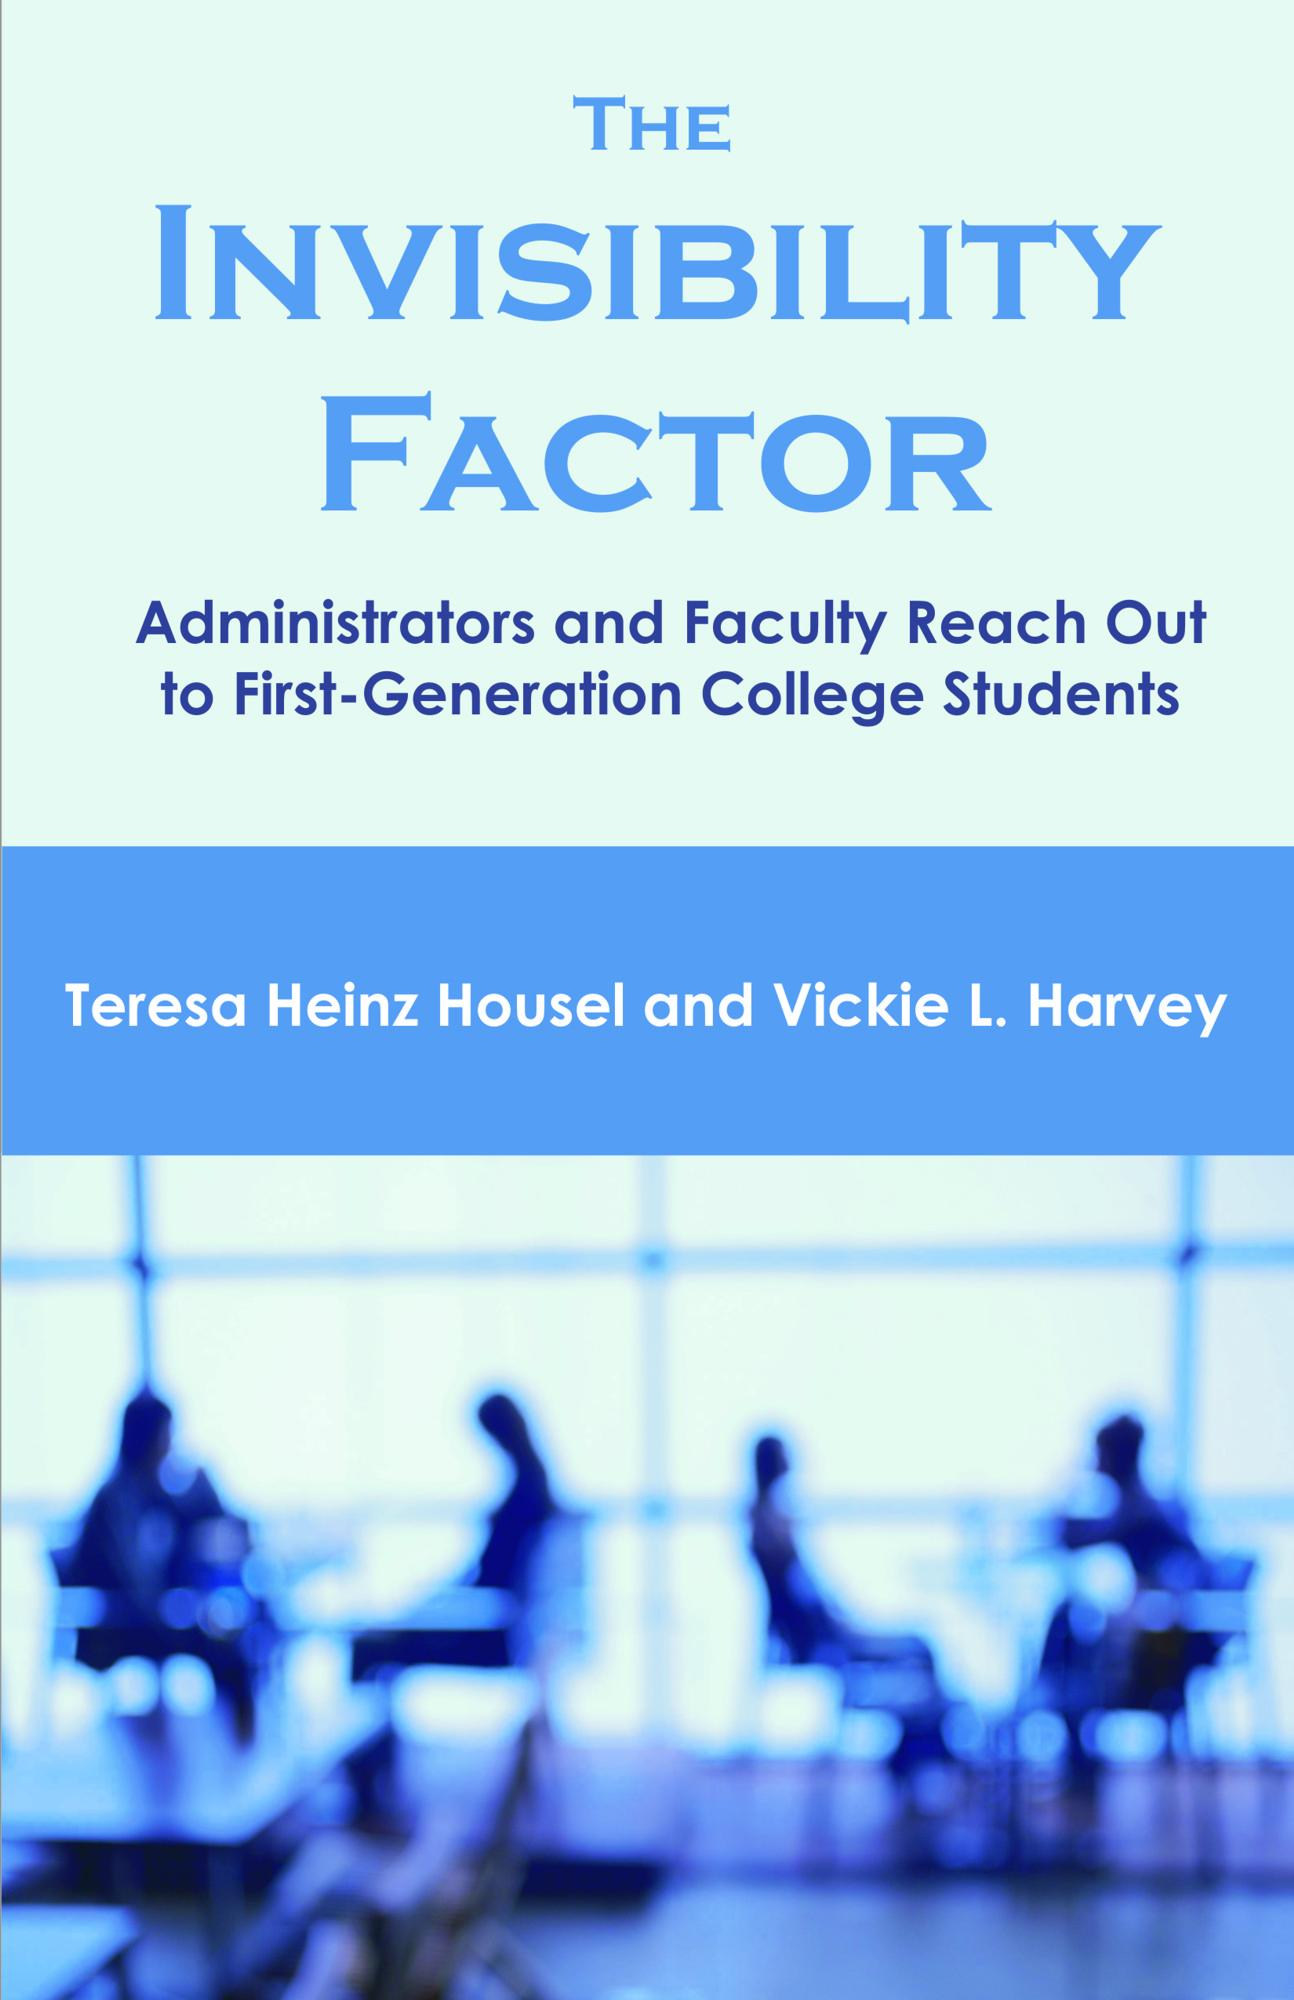 The Invisibility Factor: Administrators and Faculty Reach Out to First-Generation College Students EB9781599425245